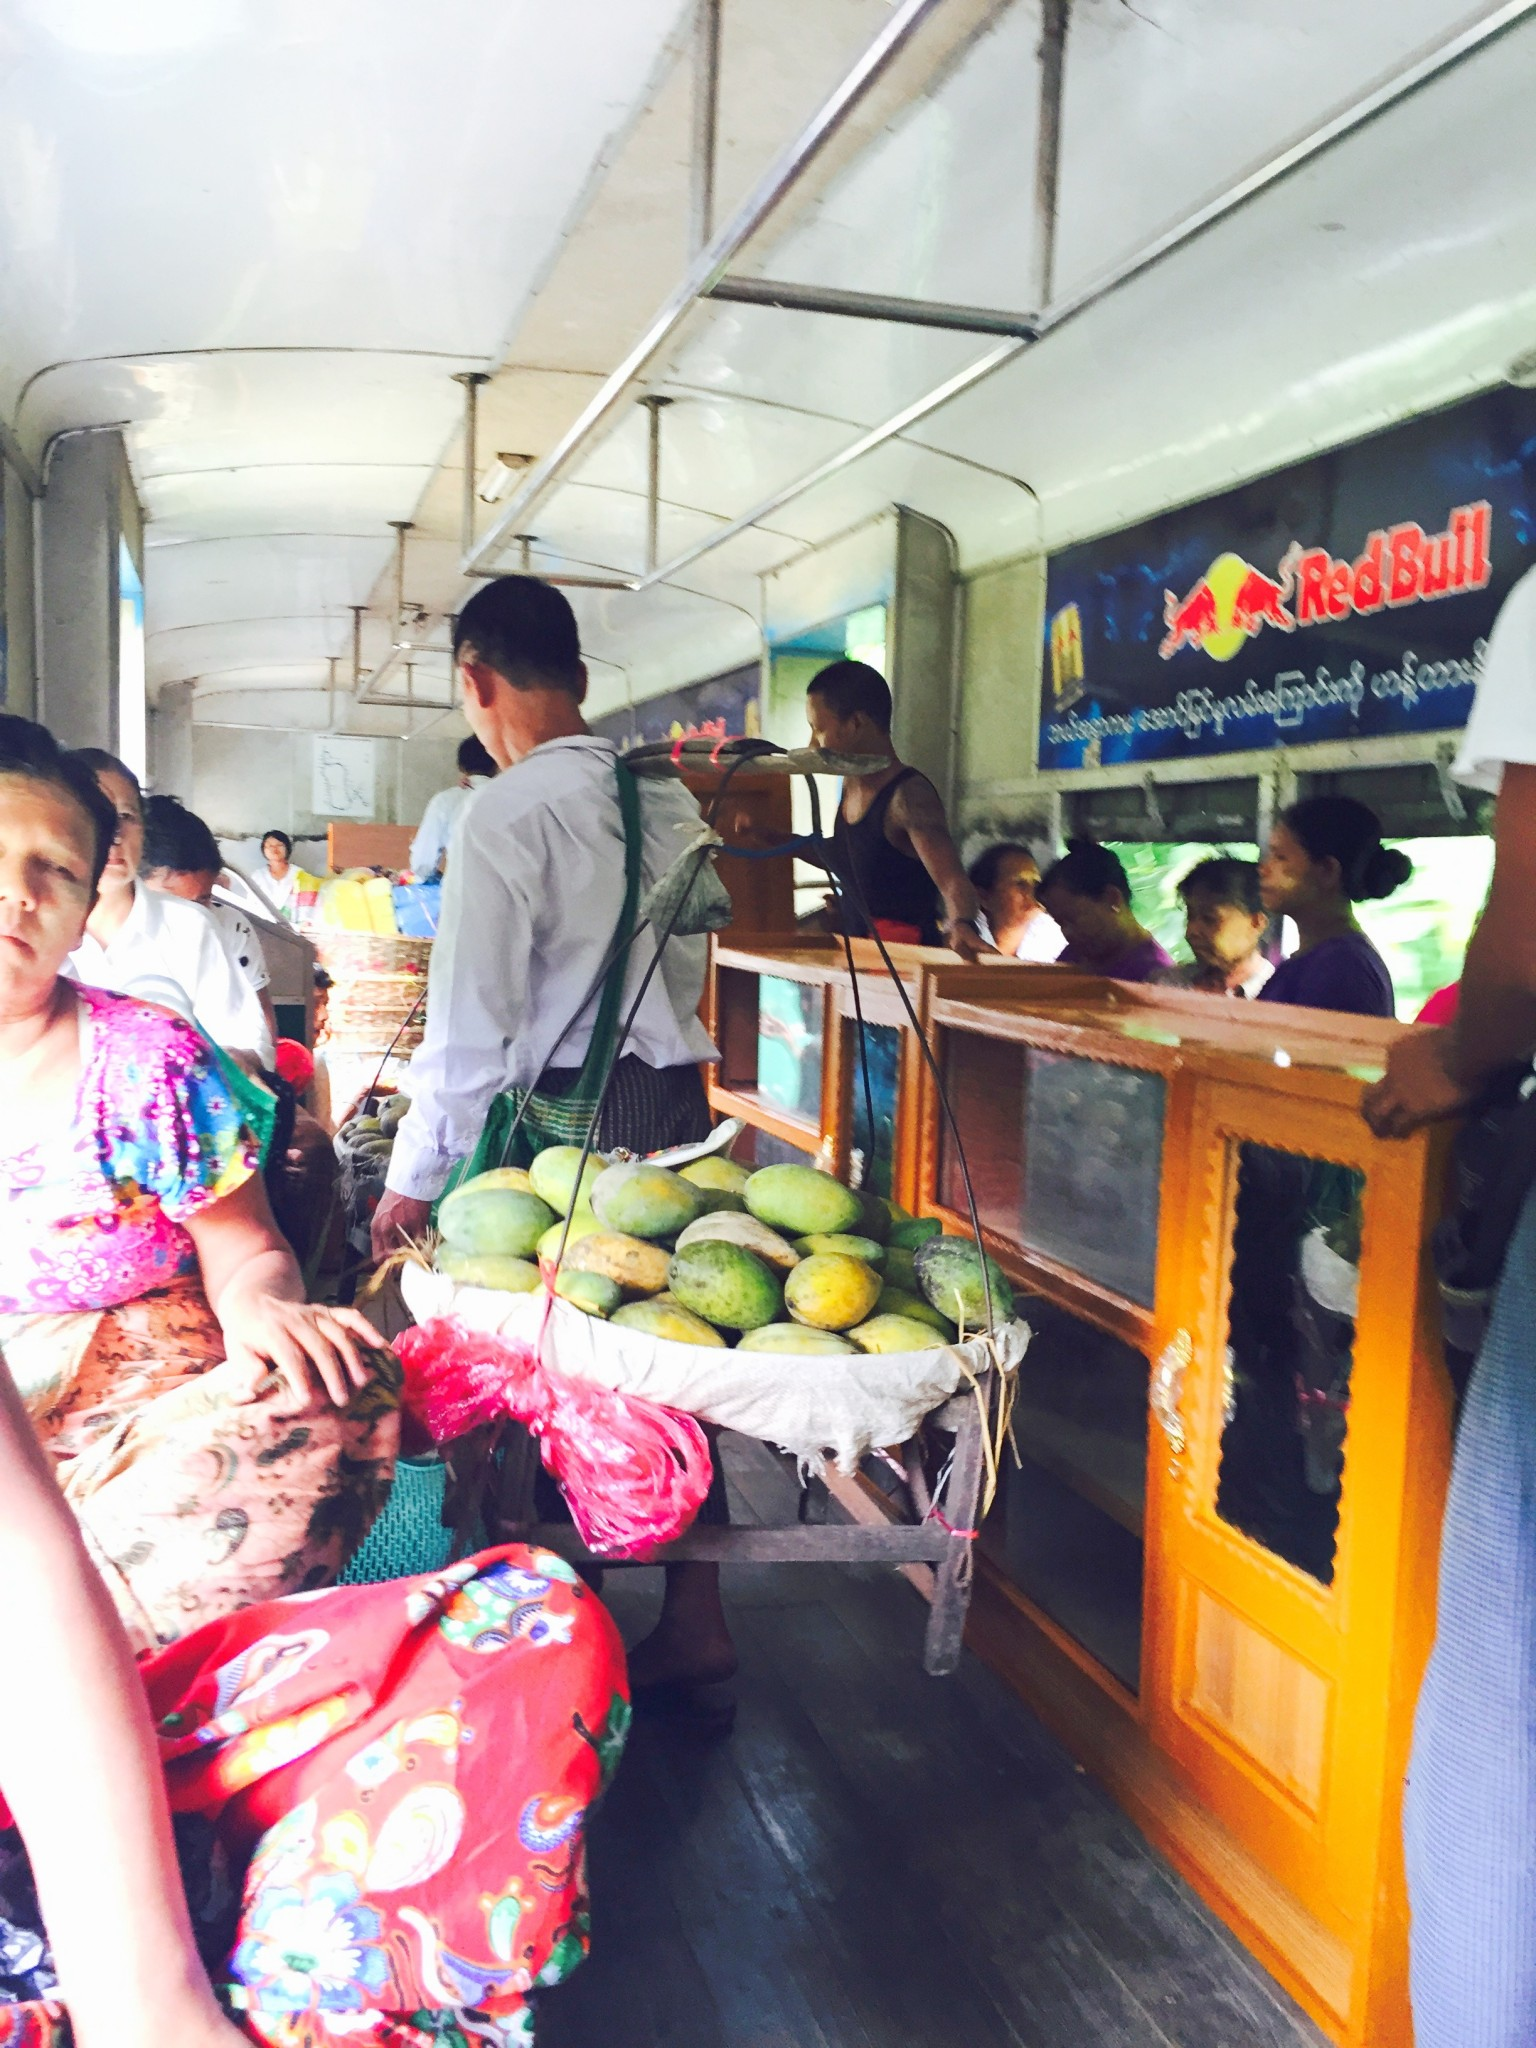 Selling fruits on train